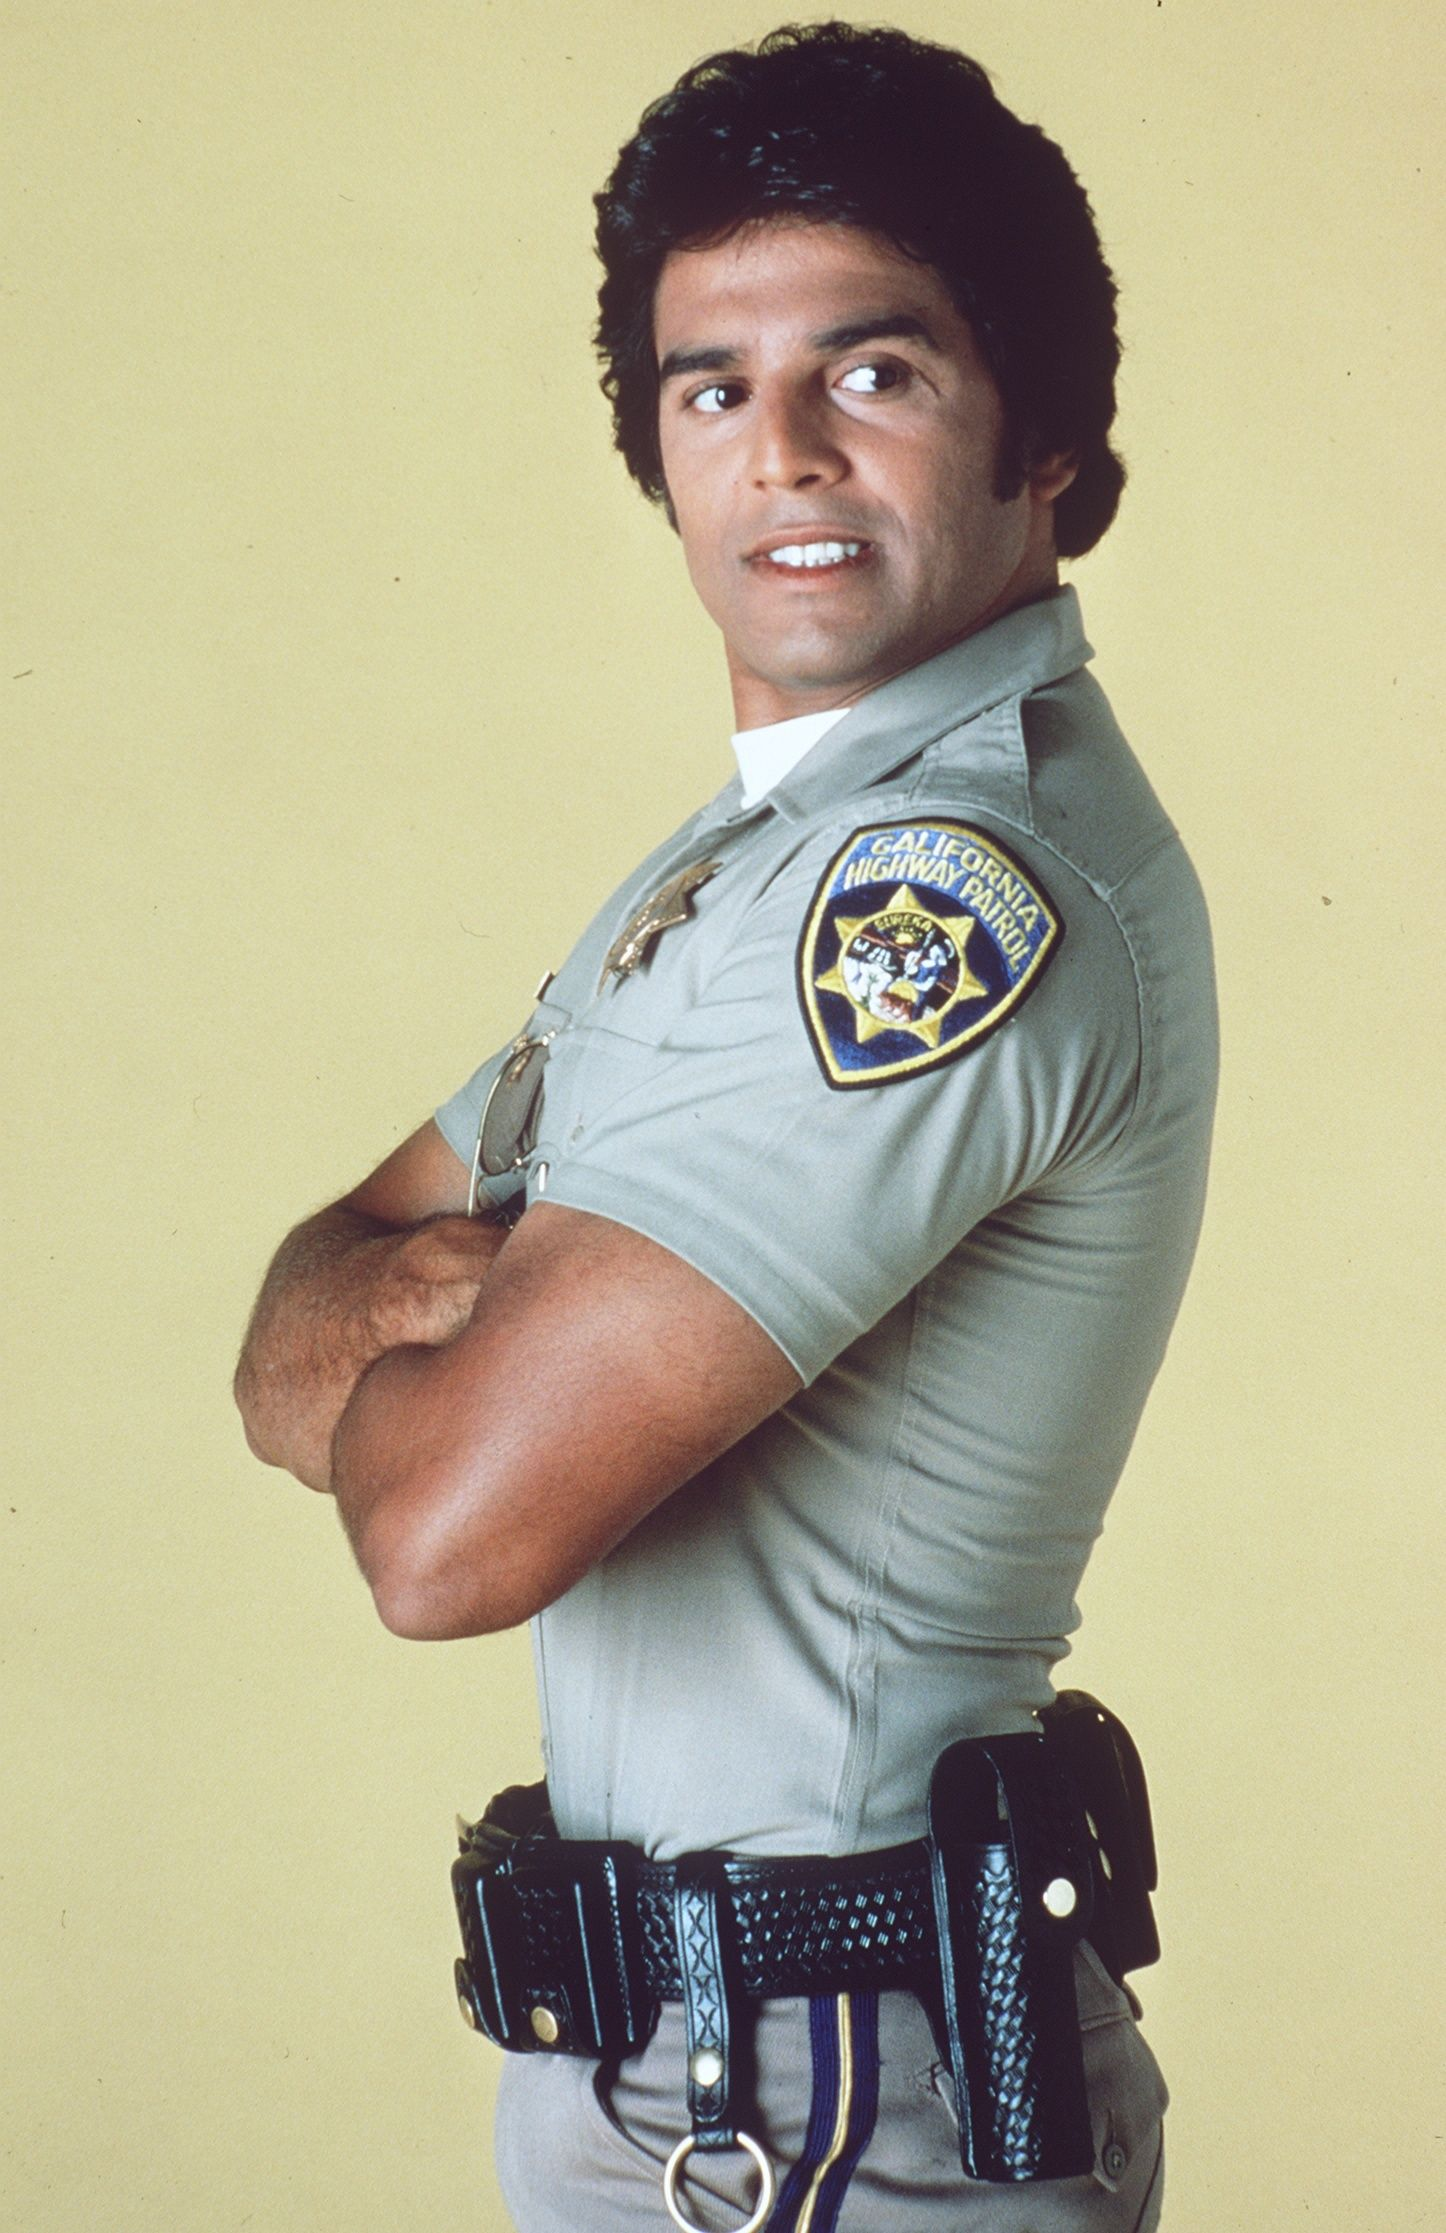 Actor Erik Estrada as Officer Francis Llewelyn Poncherello in ChiPs. After ChiPs, Erik Estrada played the lead in  telenovela Dos Mujeres, un Camino